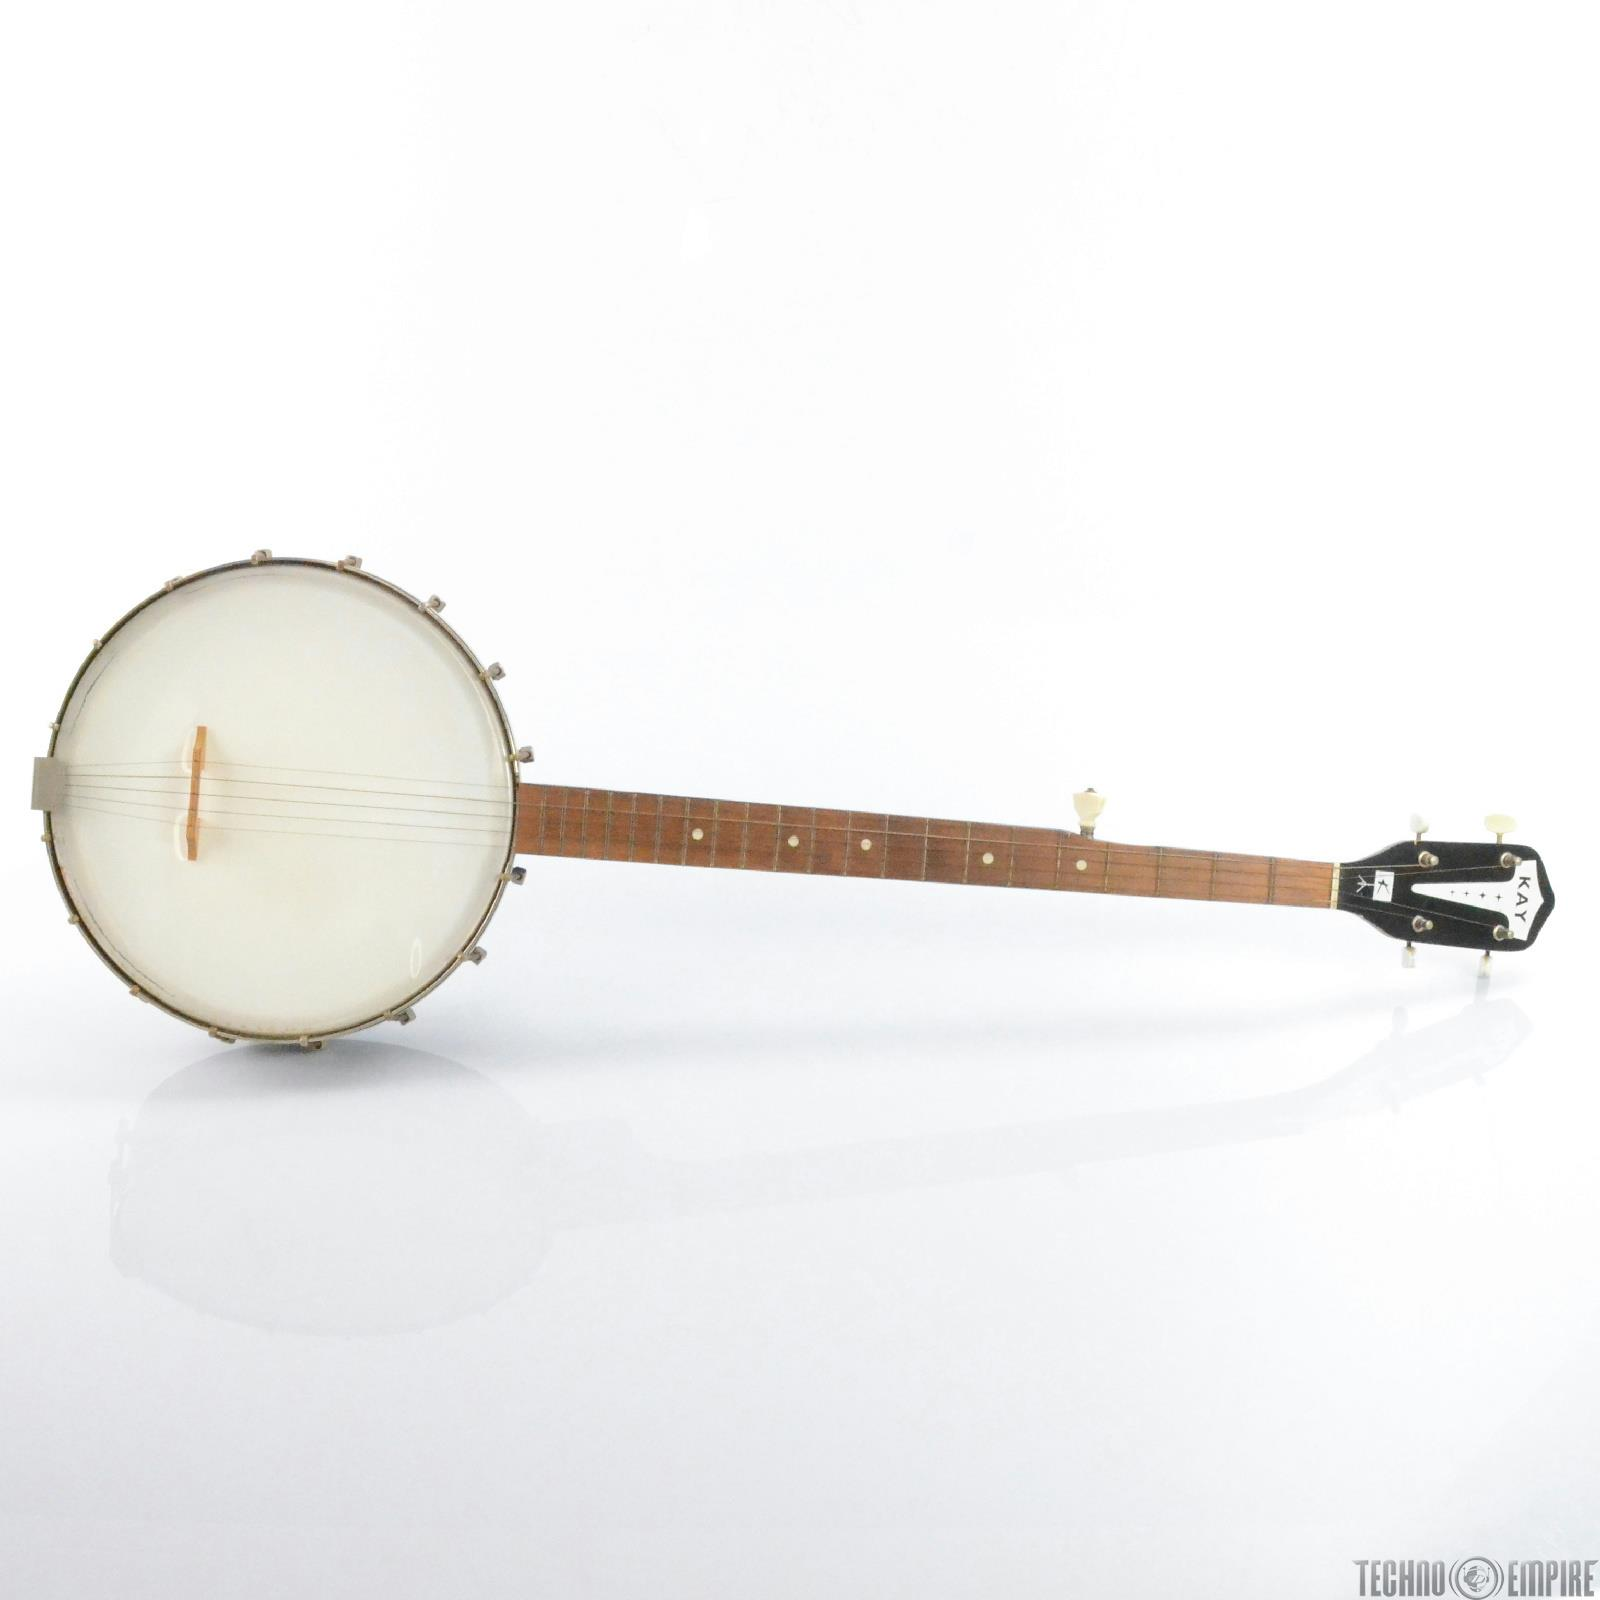 1960s Kay 5-String Open Back Banjo Acoustic Folk Instrument #29813